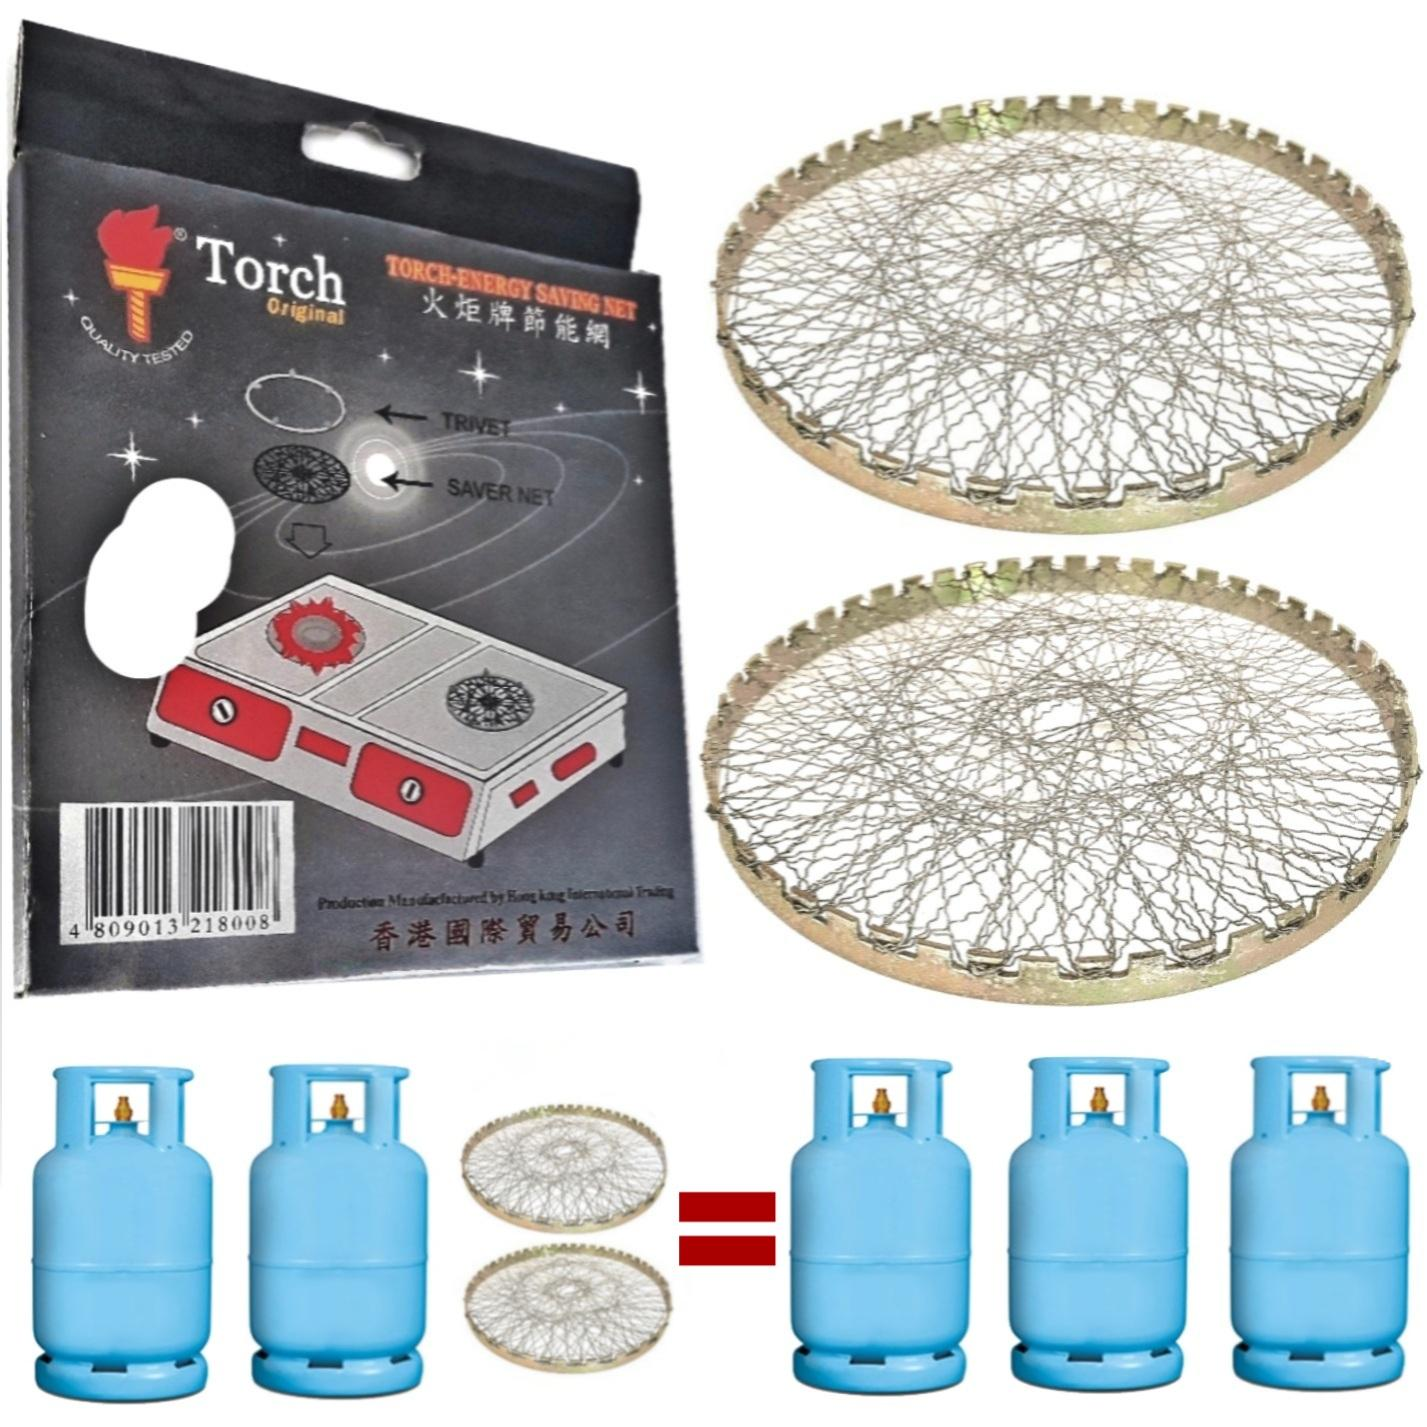 2 Torch Lpg Gas Saver Nets- Saves 33% Torch Stainless Steel Gas Energy Saver Accessory Compatible With All Gas Stoves By Shipped From Philippines.